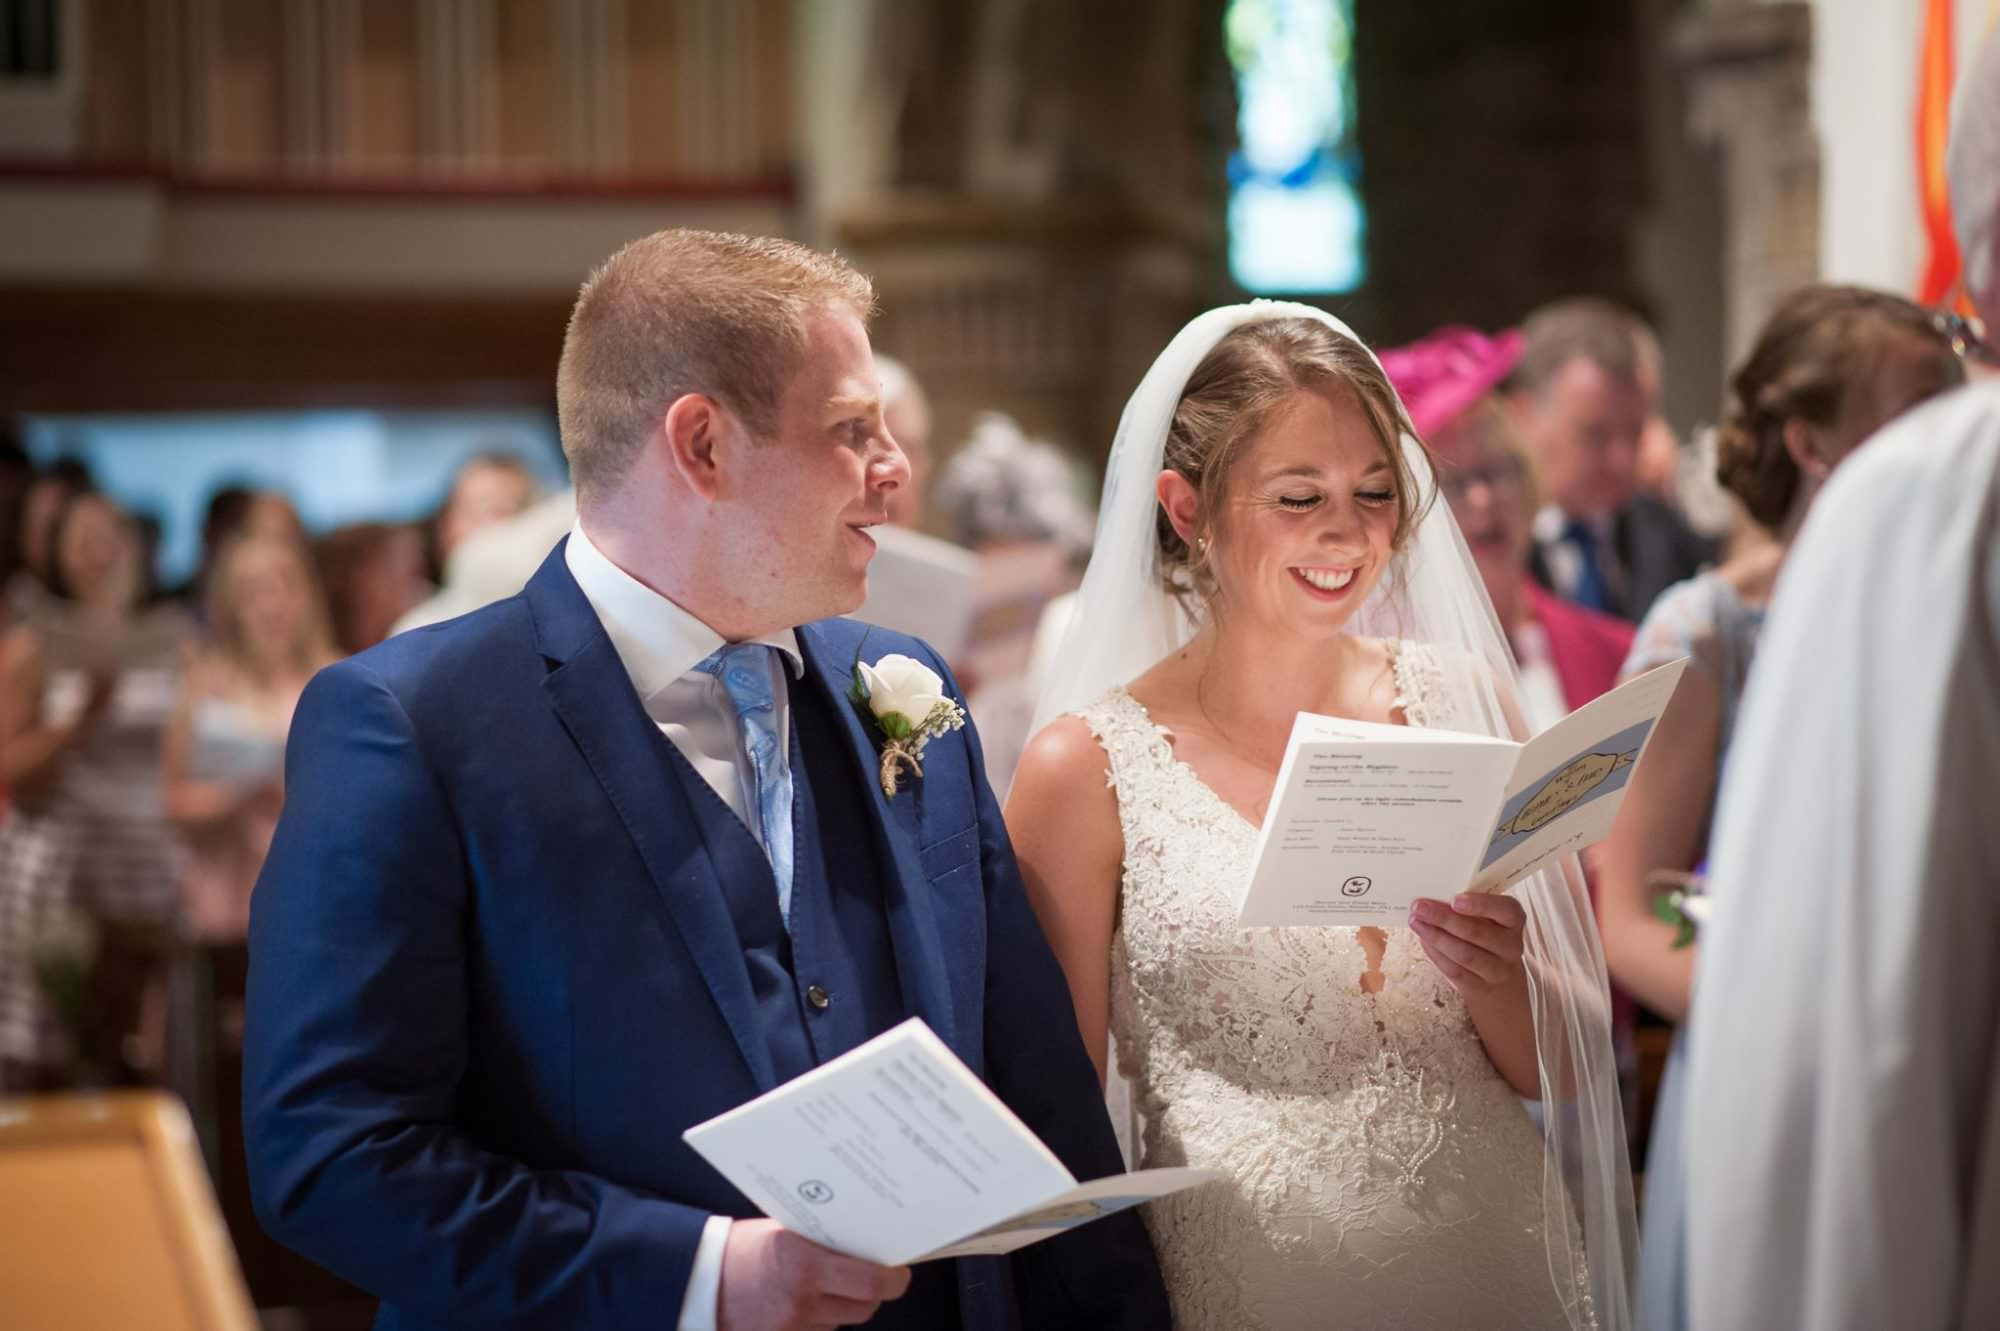 Bride and Groom at Canford magna church wedding